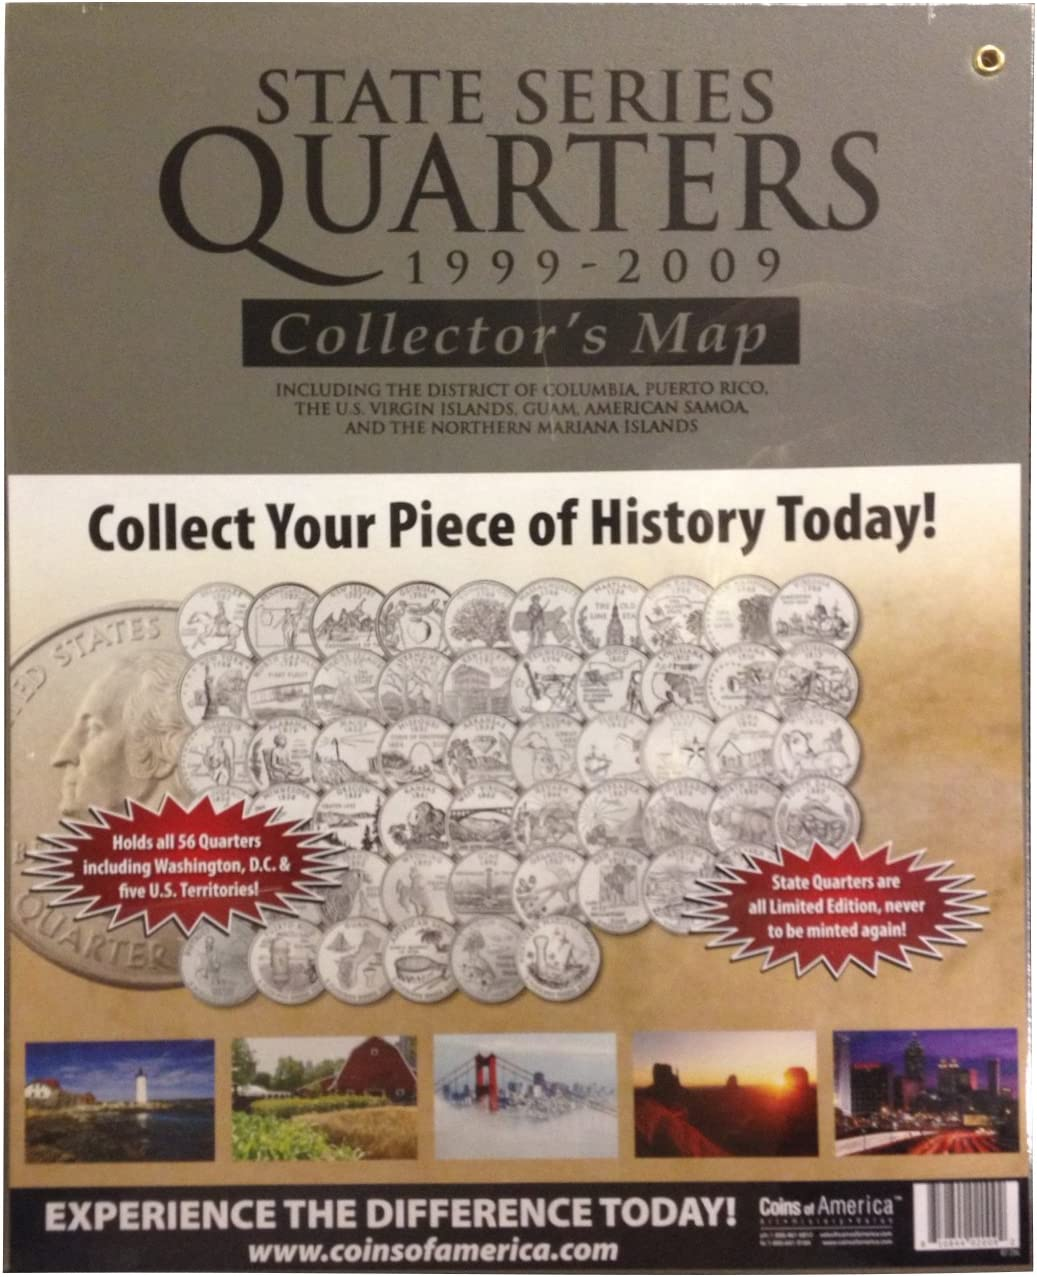 COIN COLLECTOR/'S MAP HARRIS BRAND - H.E STATE QUARTERS 1999-2009